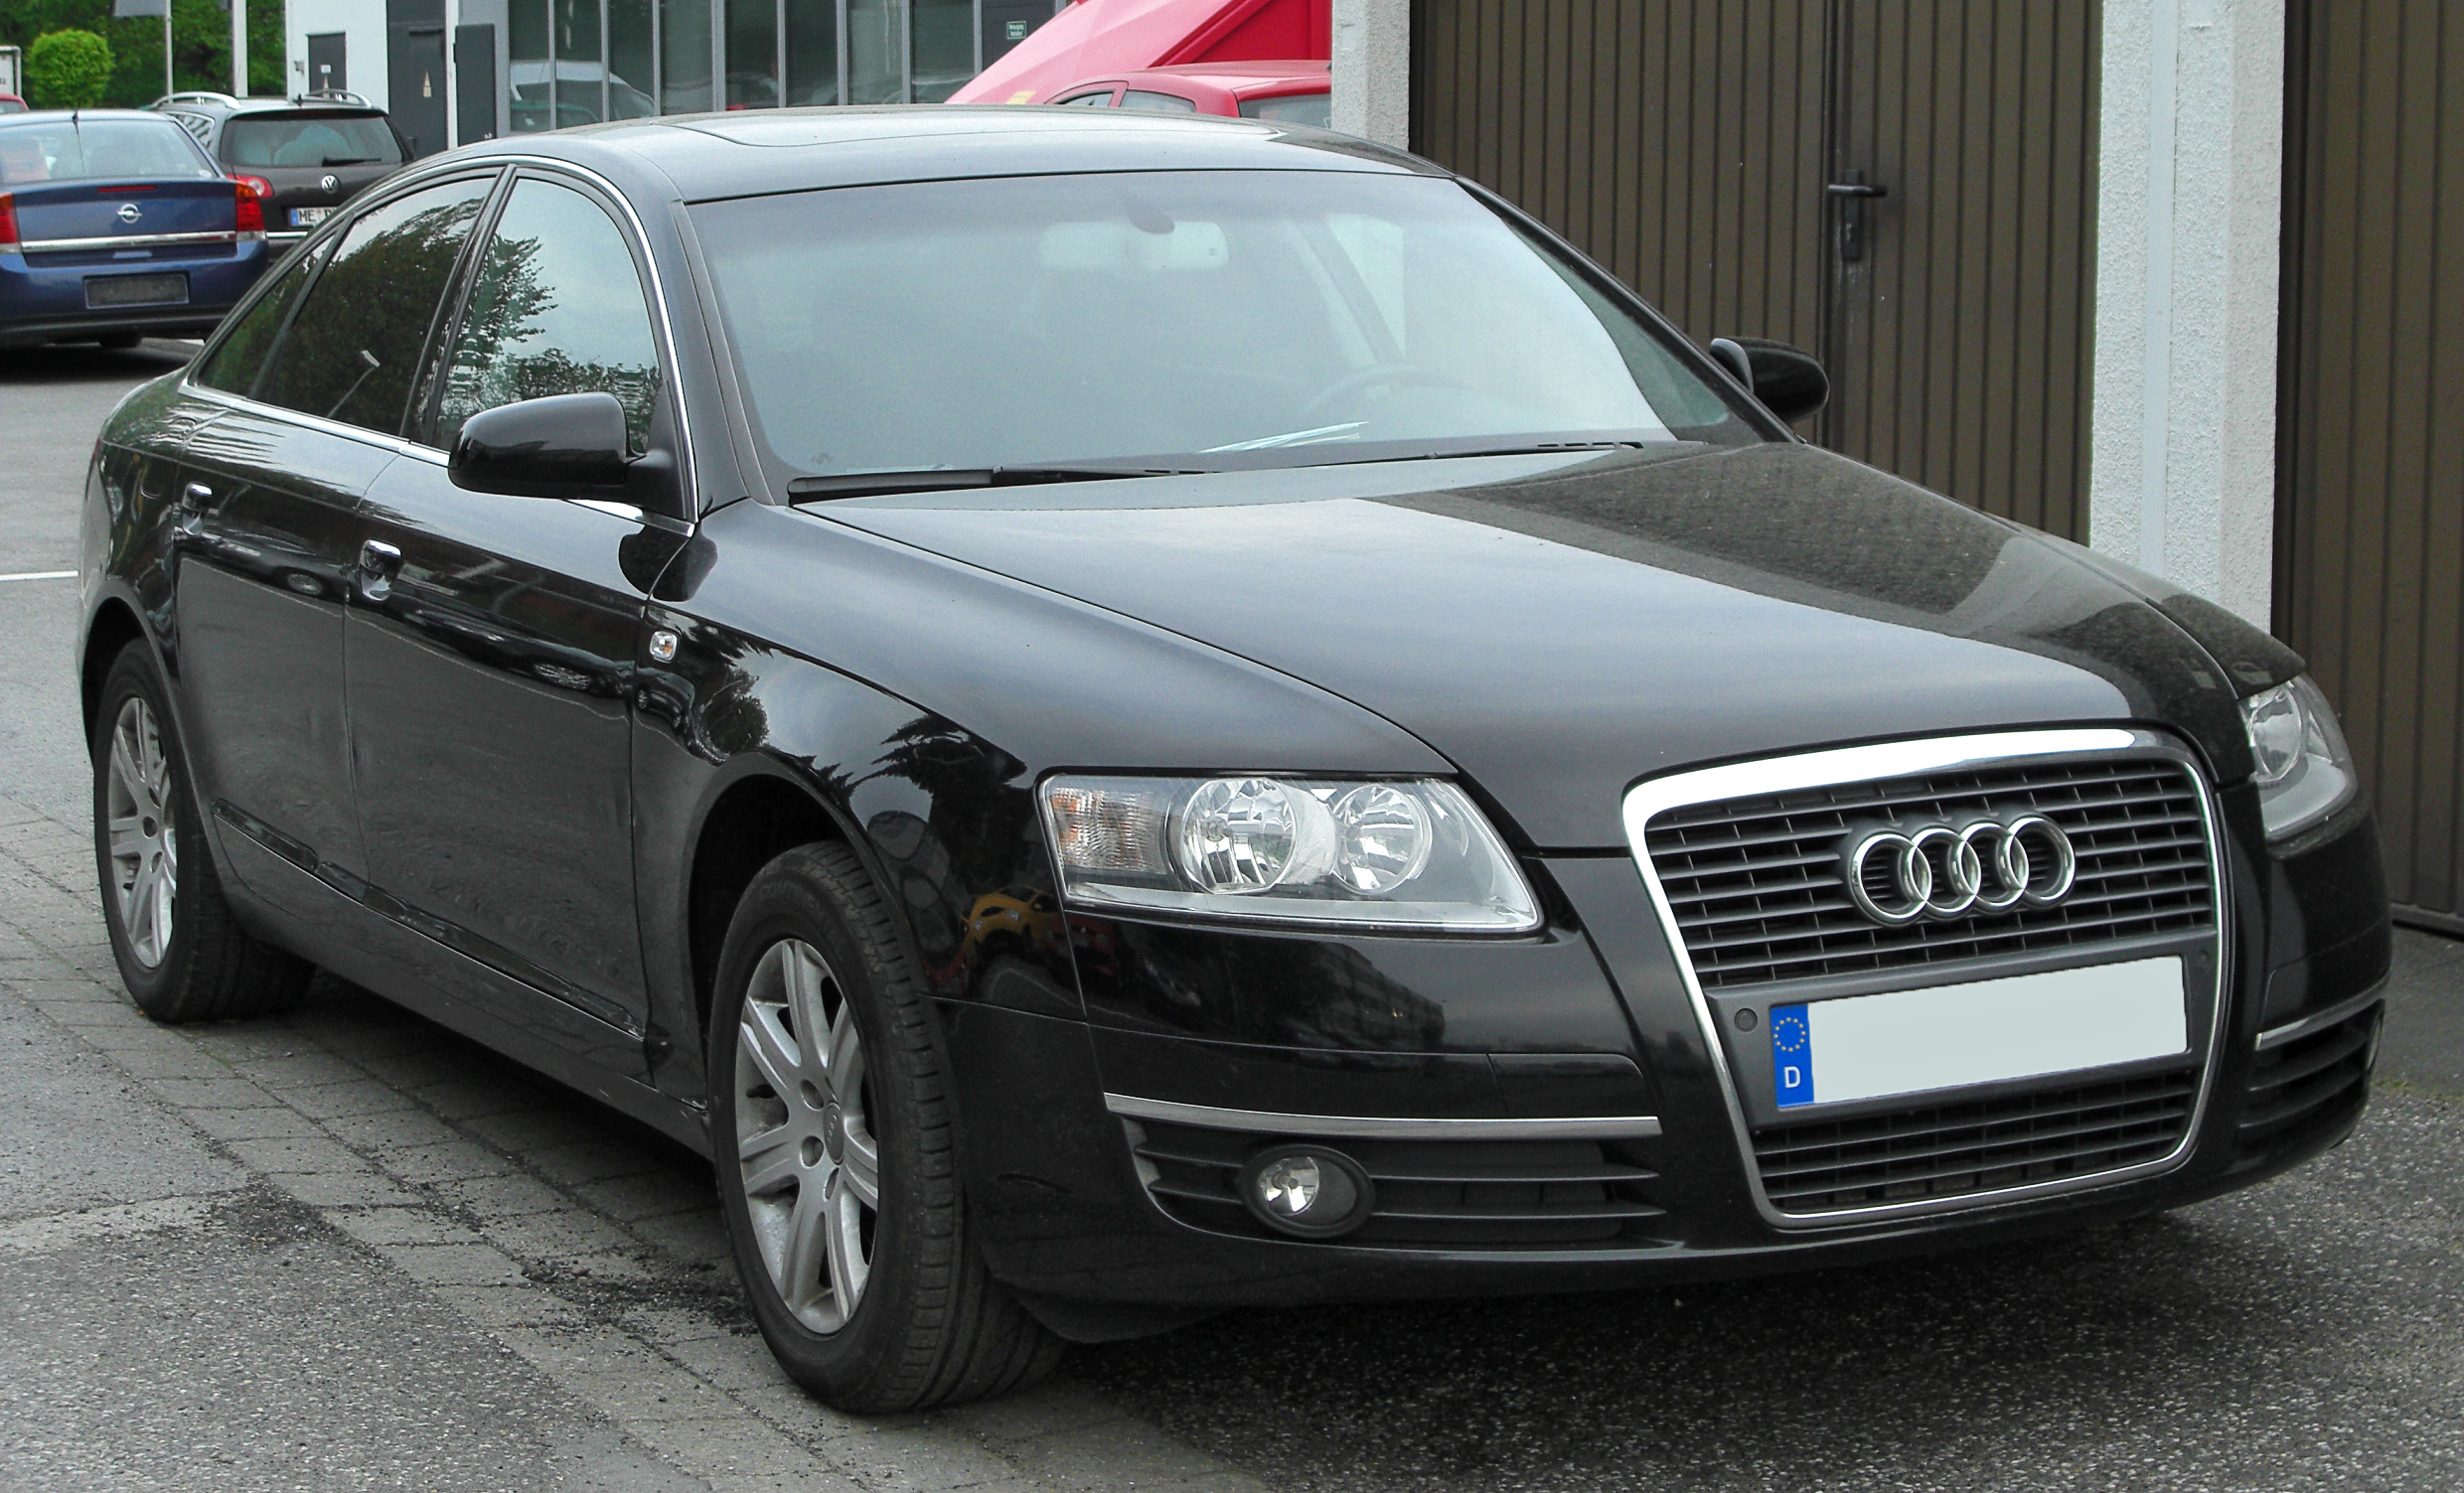 2007 audi a6 4f c6 pictures information and specs. Black Bedroom Furniture Sets. Home Design Ideas